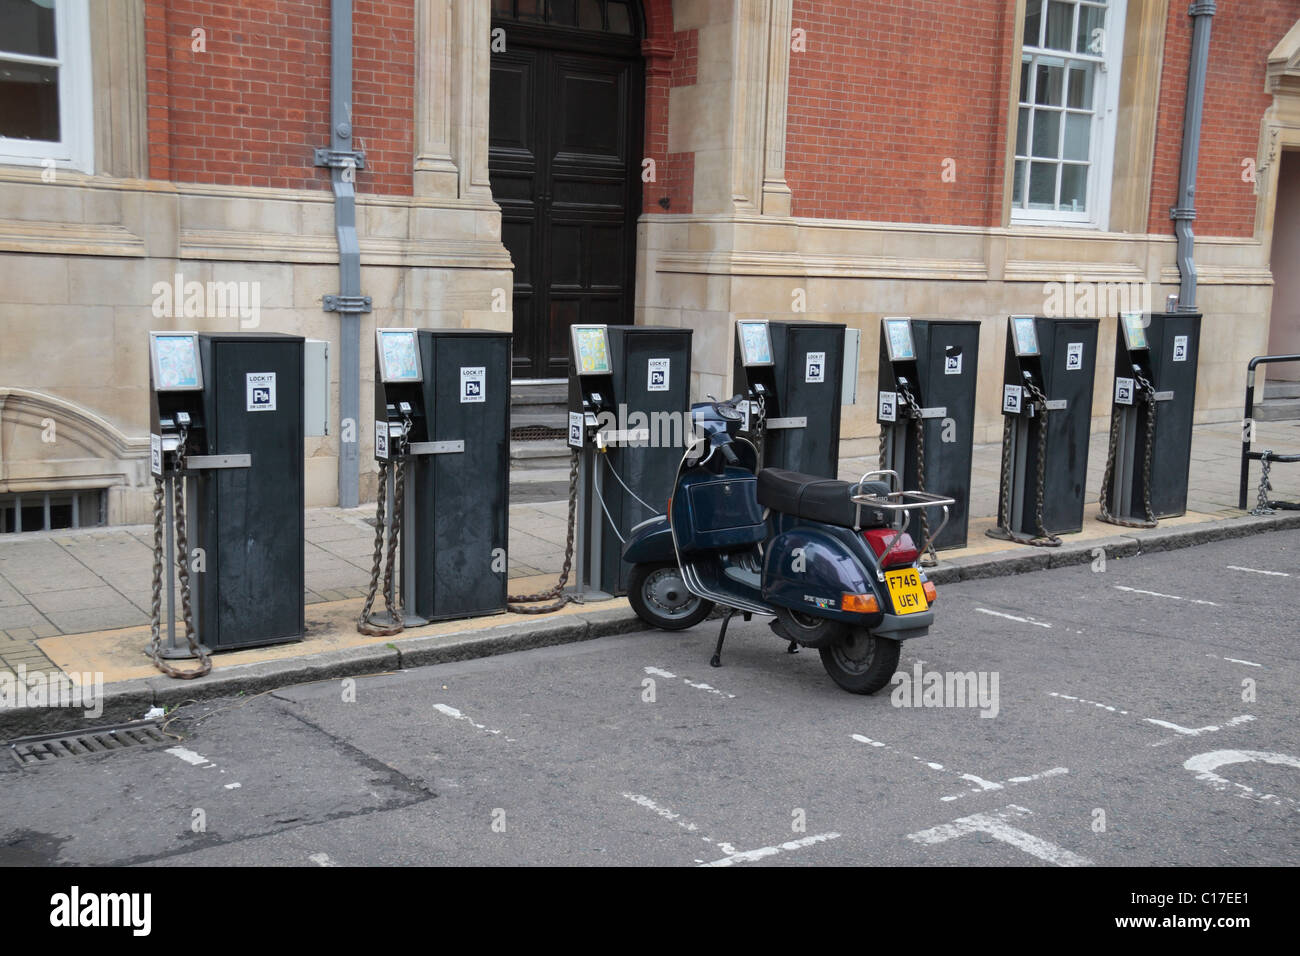 A motorbike parking area with parking machines/meters close to the town centre of Leicester, Leicestershire, England. - Stock Image